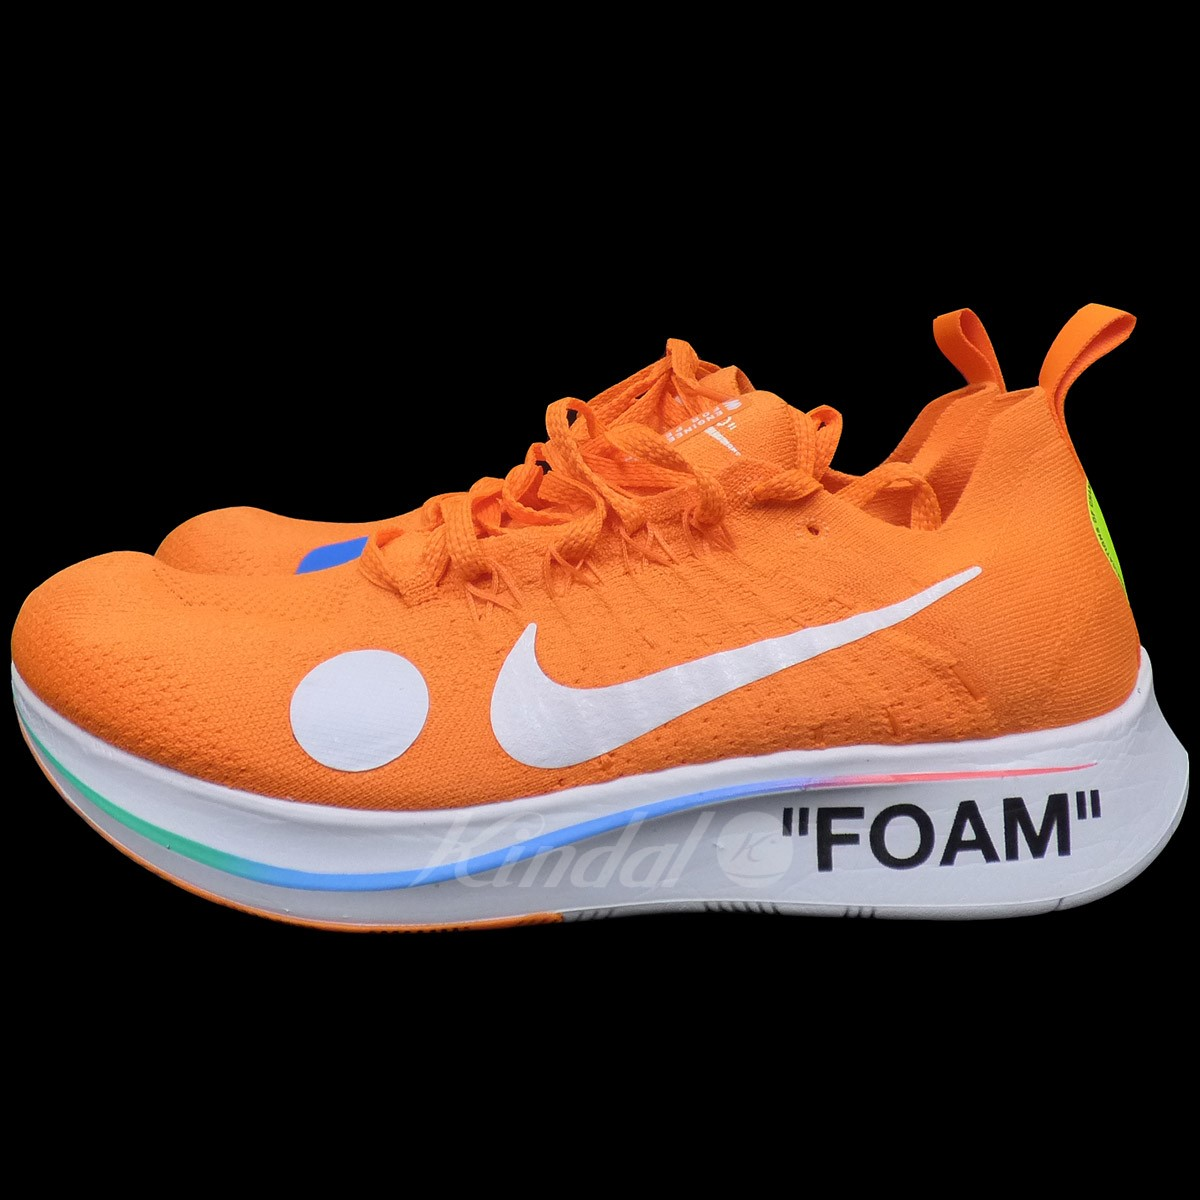 7f2f277cd1144 OFF WHITE X NIKE Zoom Fly Mercurial Flyknit zoom fly fly knit sneakers  orange size  US9(27cm) (off-white Nike)